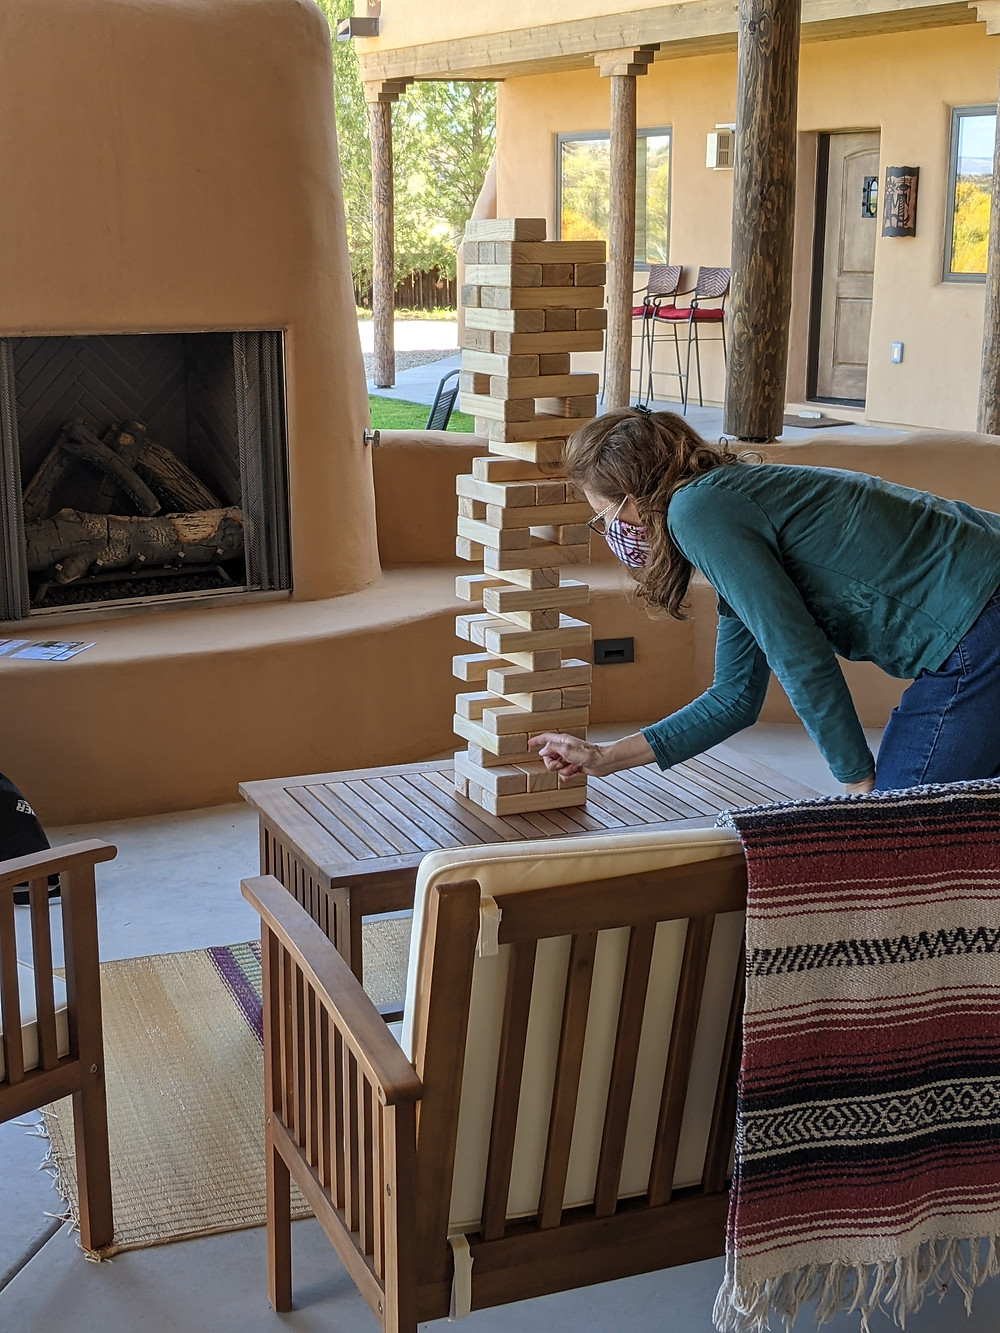 Woman playing Jenga on a patio, with fall colors reflected in the windows behind her.